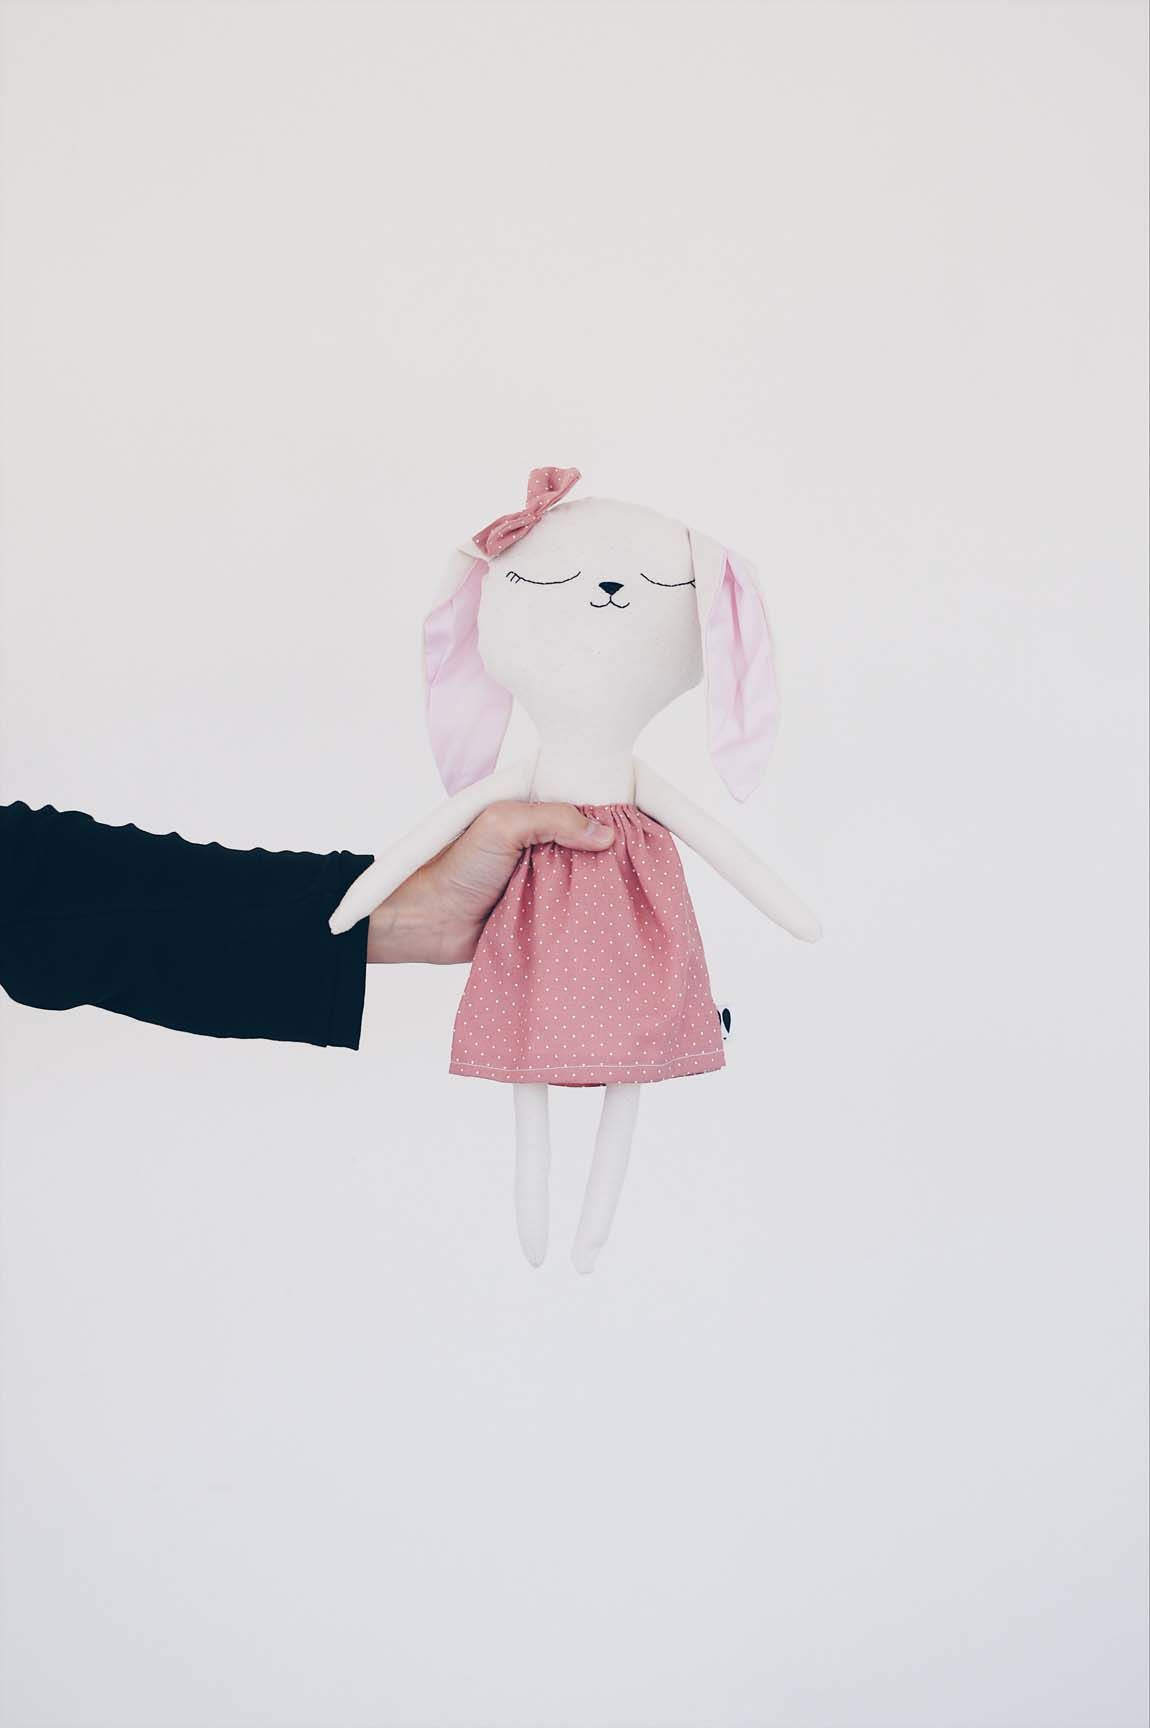 Benita big bunny doll with pink dress with white dots